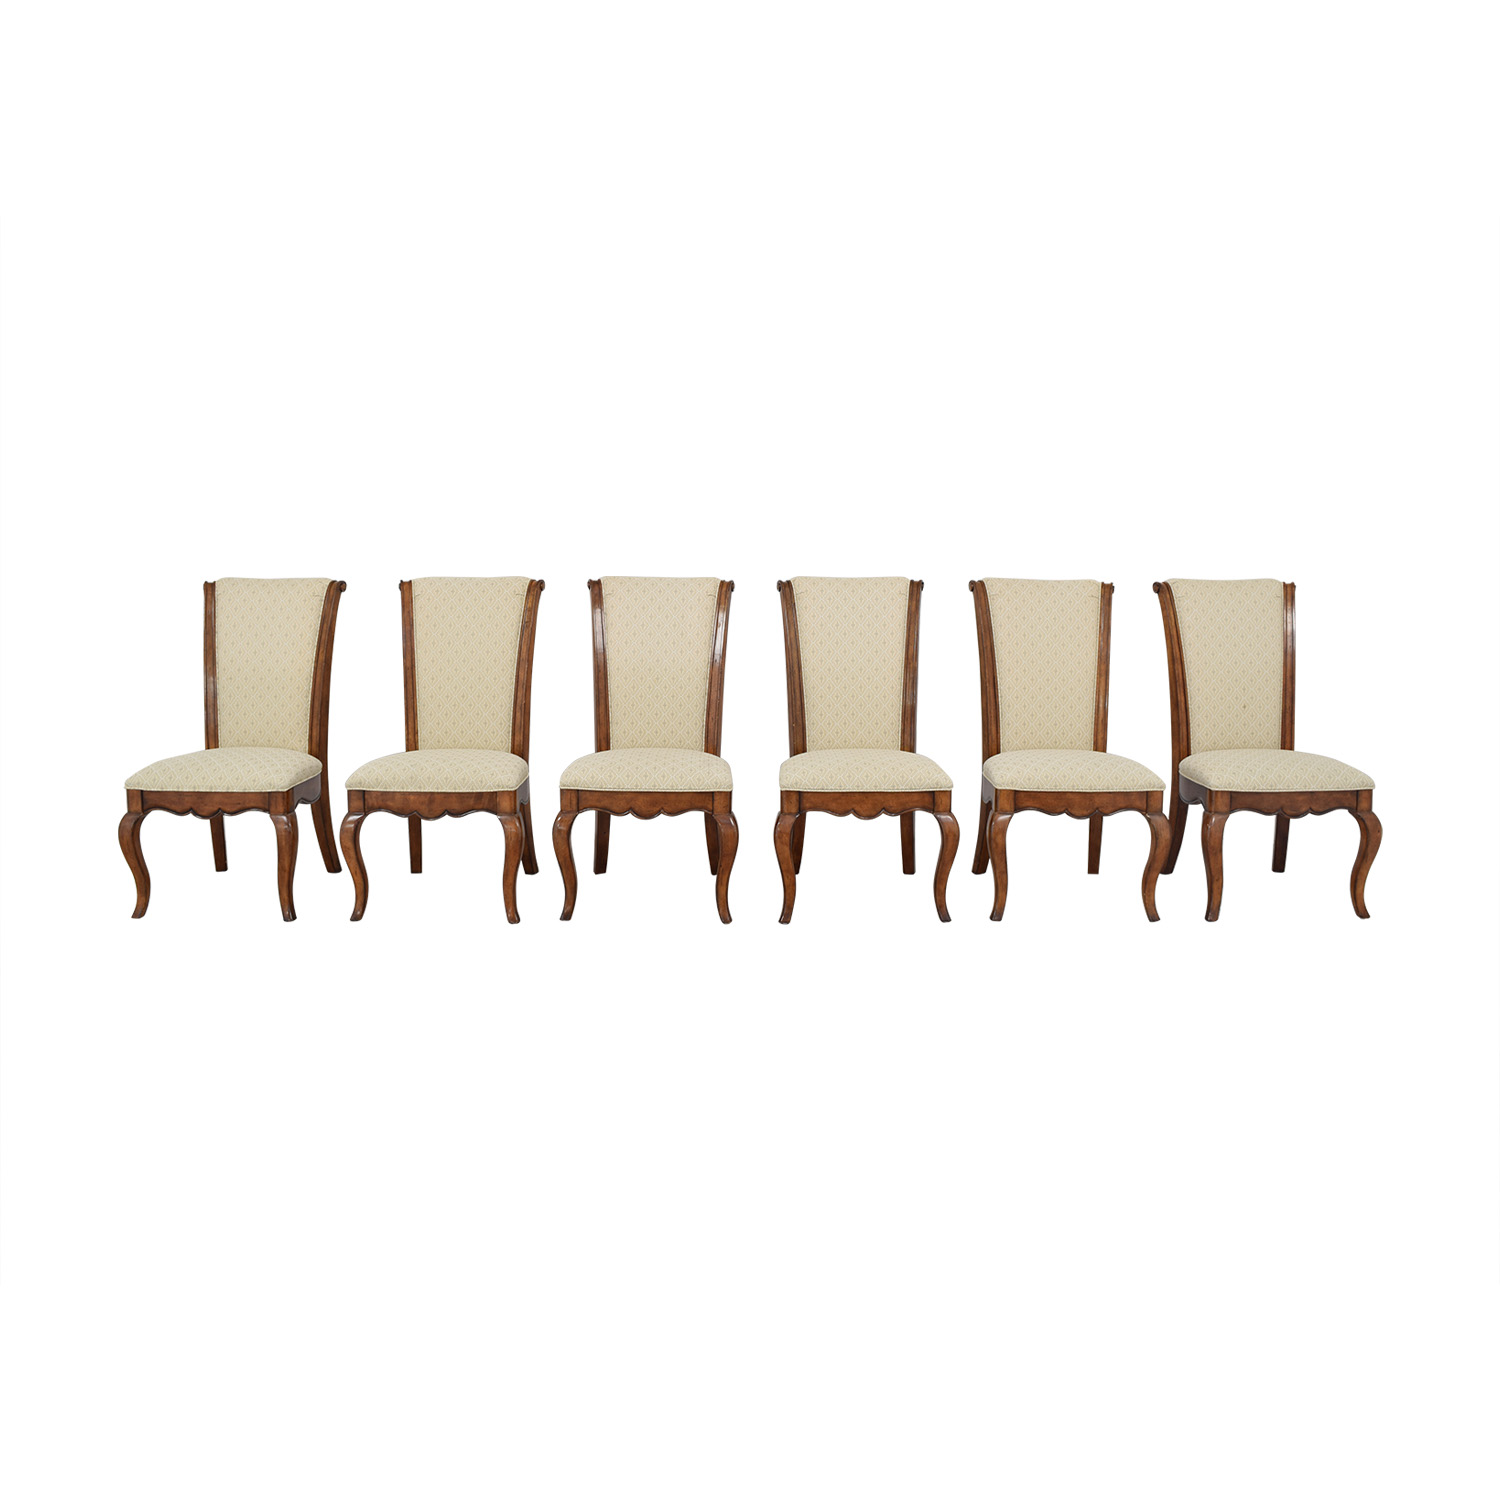 buy Drexel Heritage Drexel Heritage Extendable Dining Chairs online